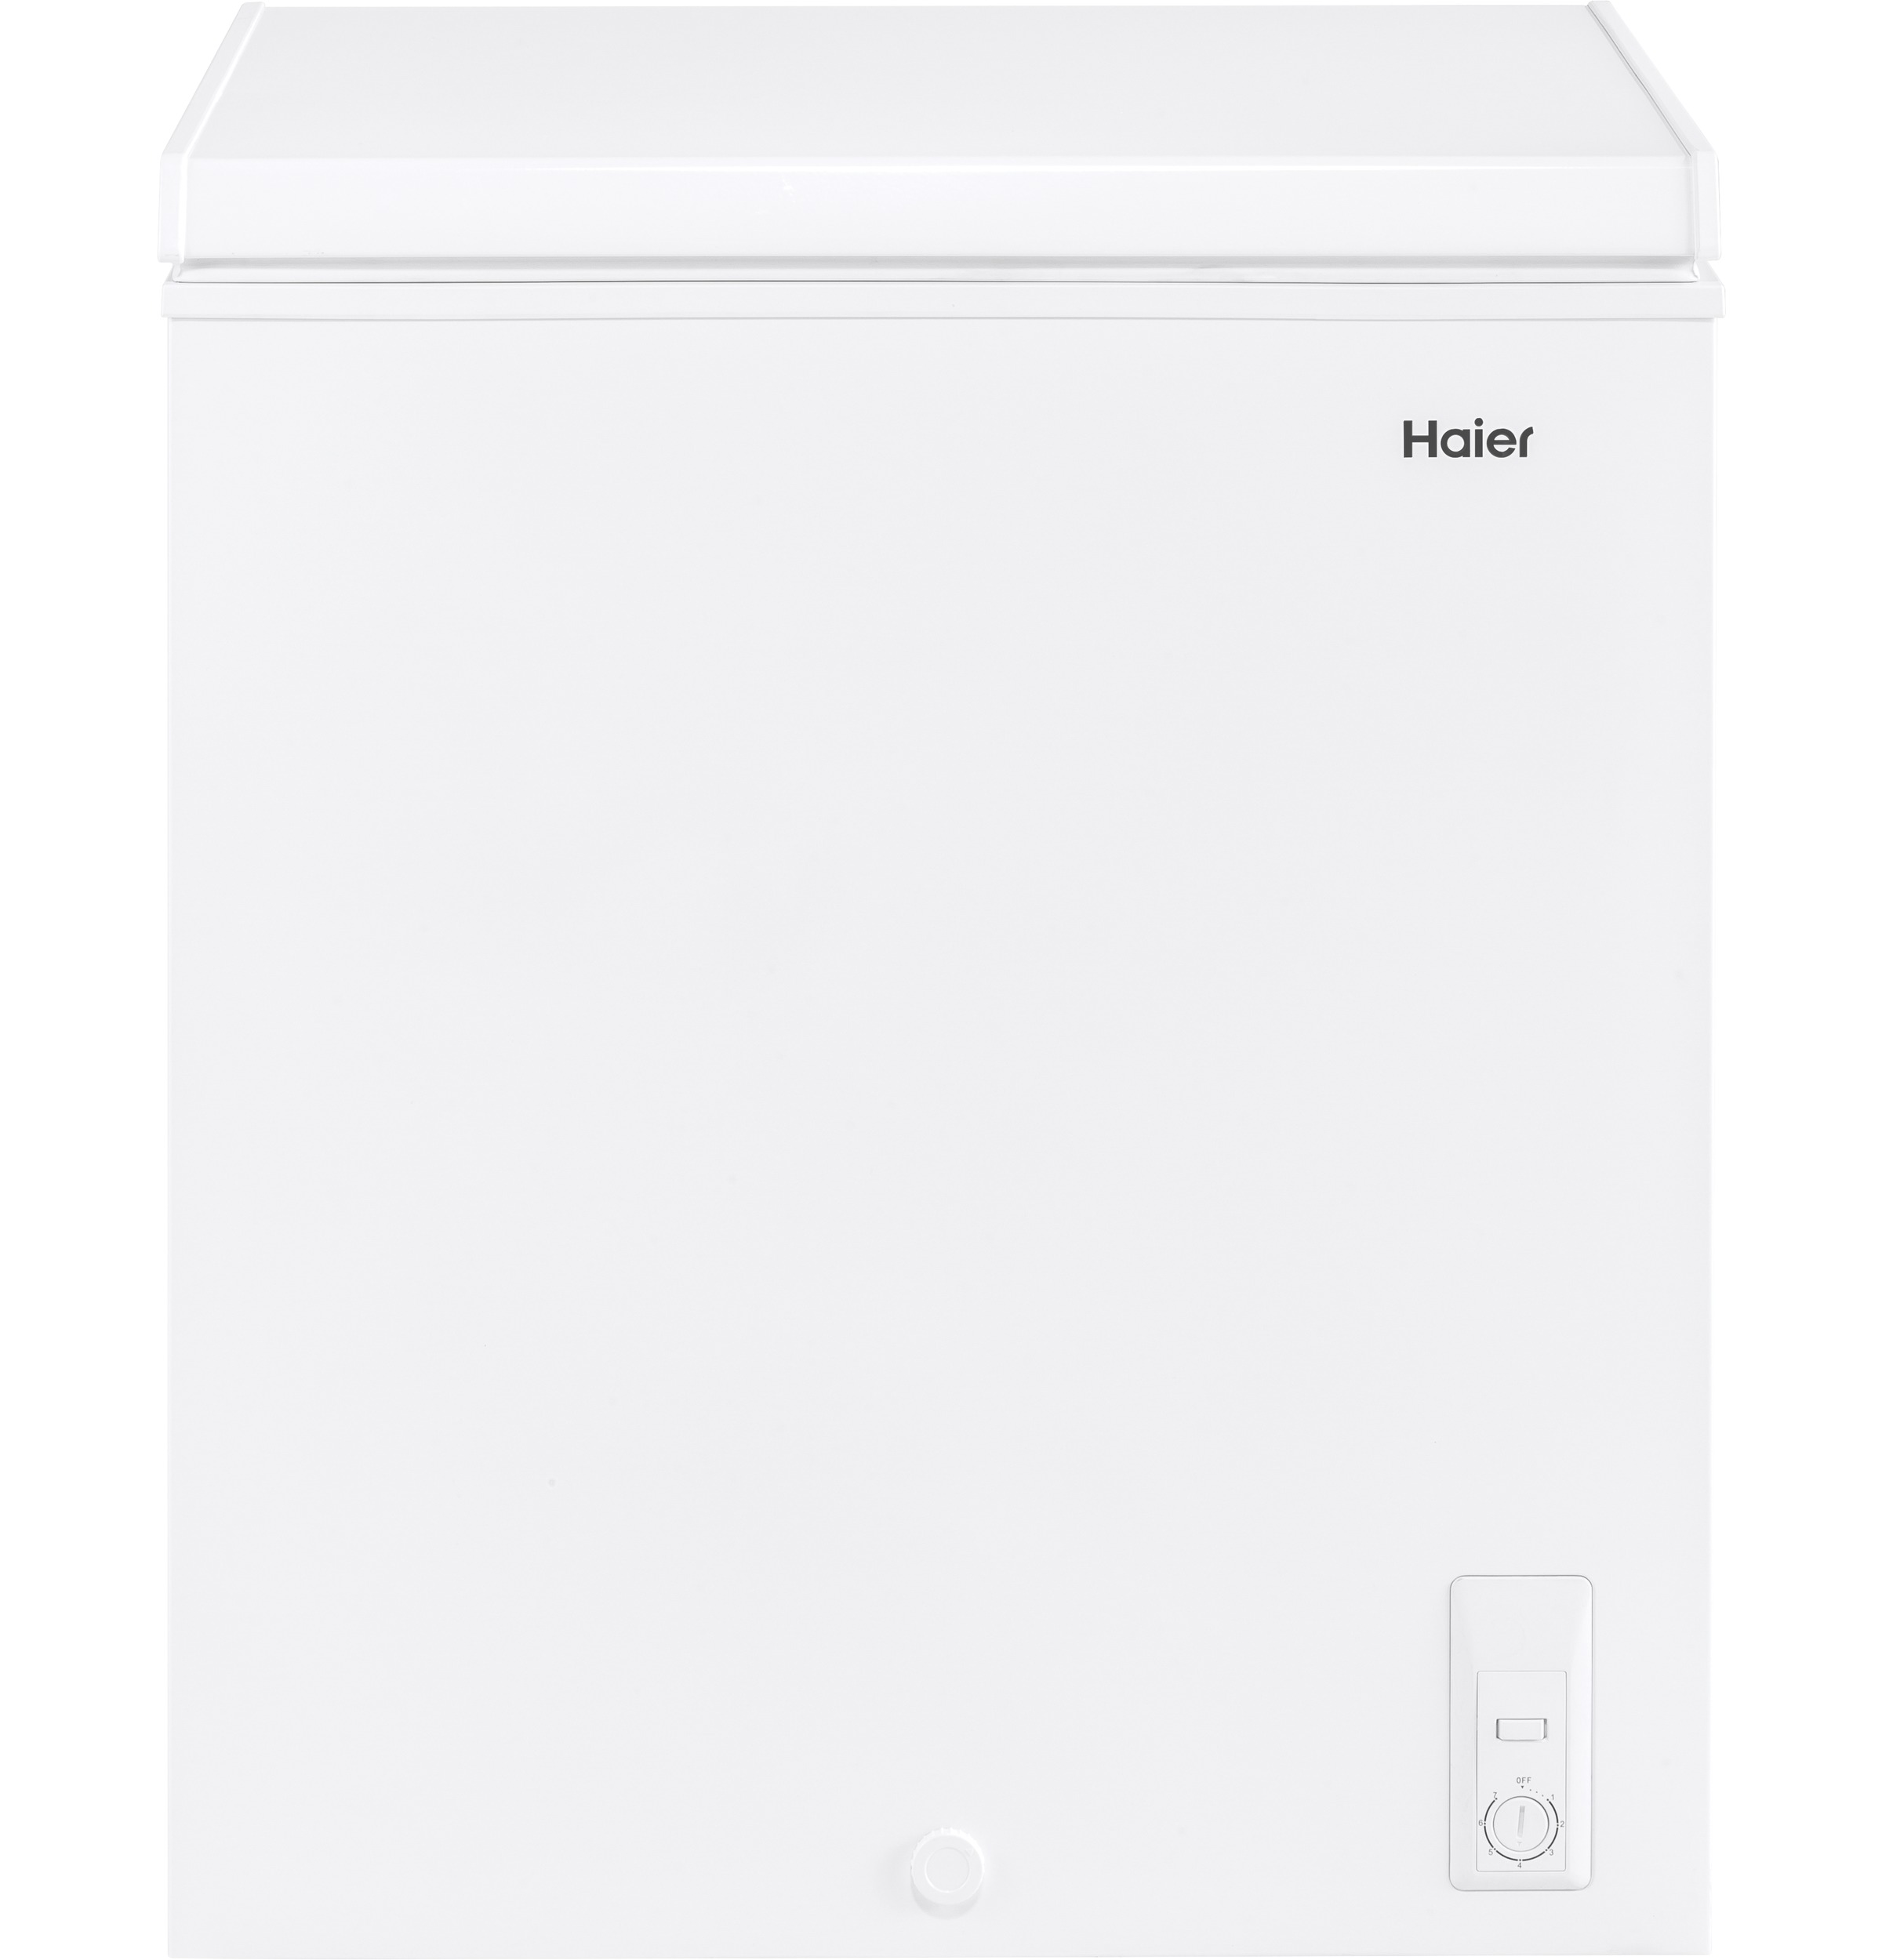 HF50CW20W -5.0 Cu. Ft. Capacity Chest Freezer | Haier Appliances